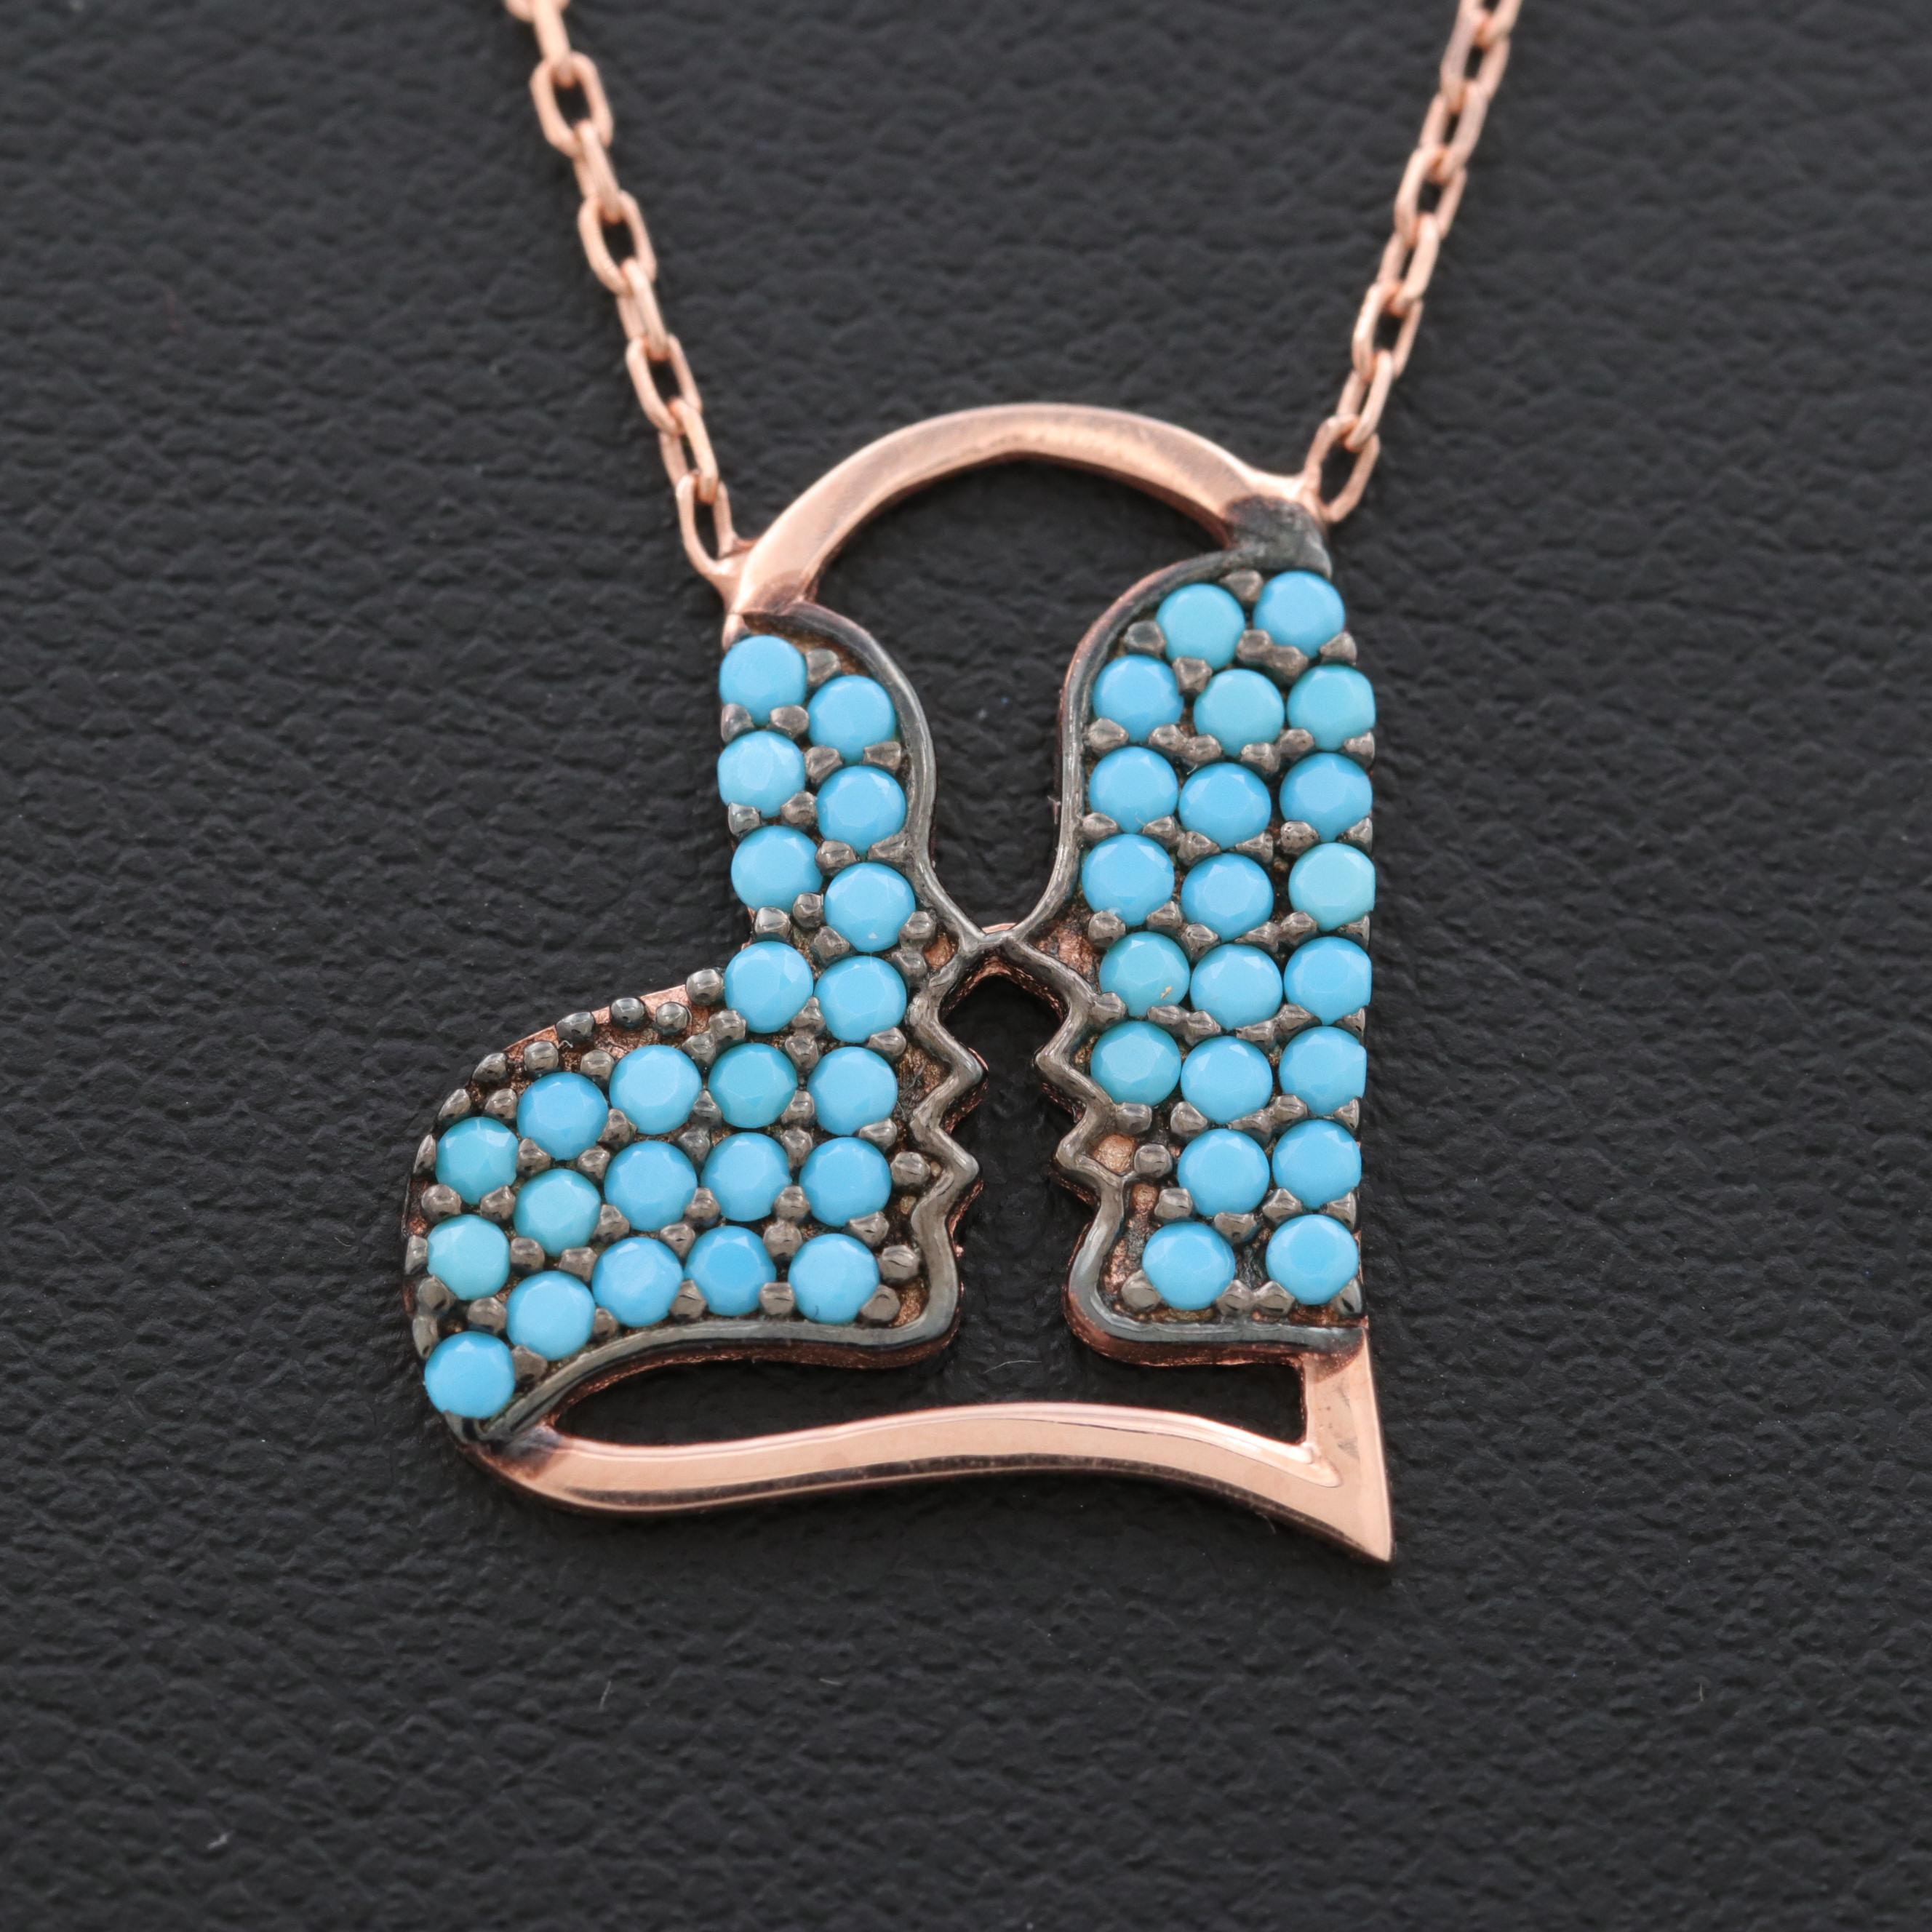 Rose Gold Wash on Sterling Silver Imitation Turquoise Heart Pendant Necklace